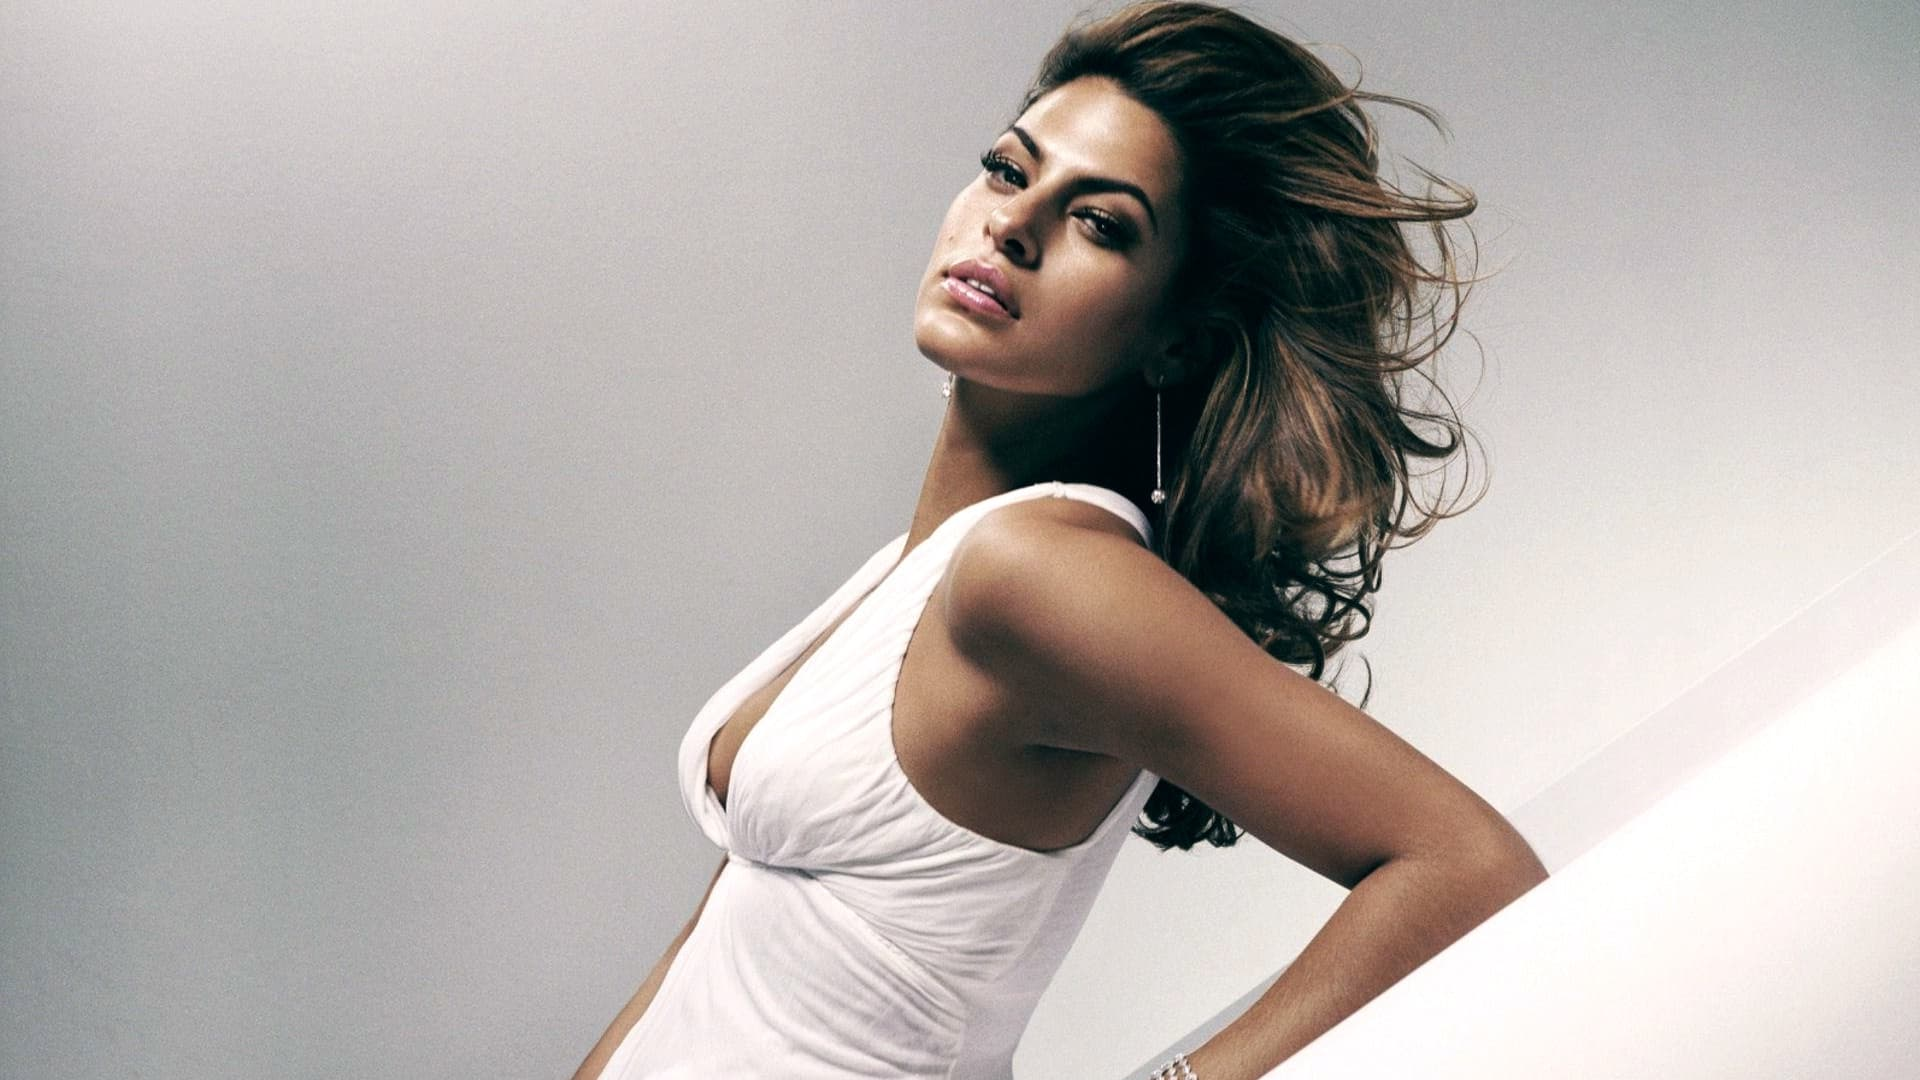 beautiful Eva Mendes HD wallpaper